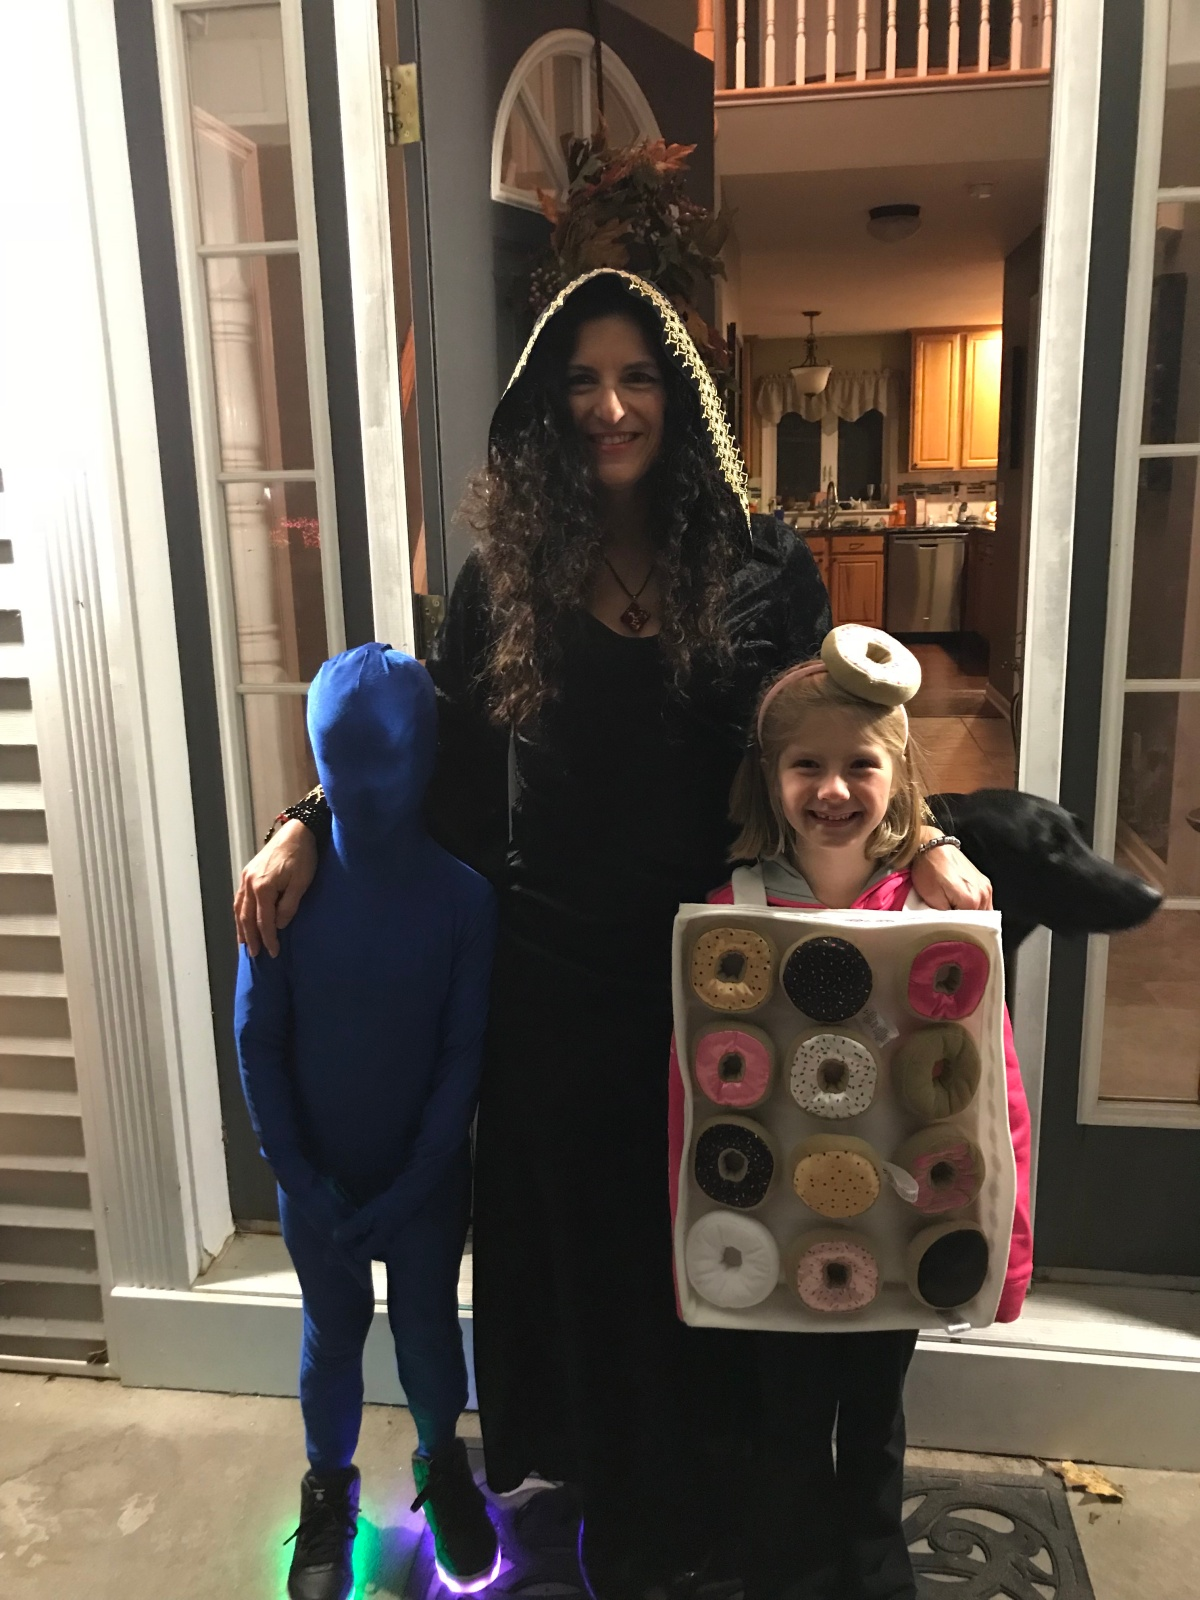 laurenowenandmehalloween